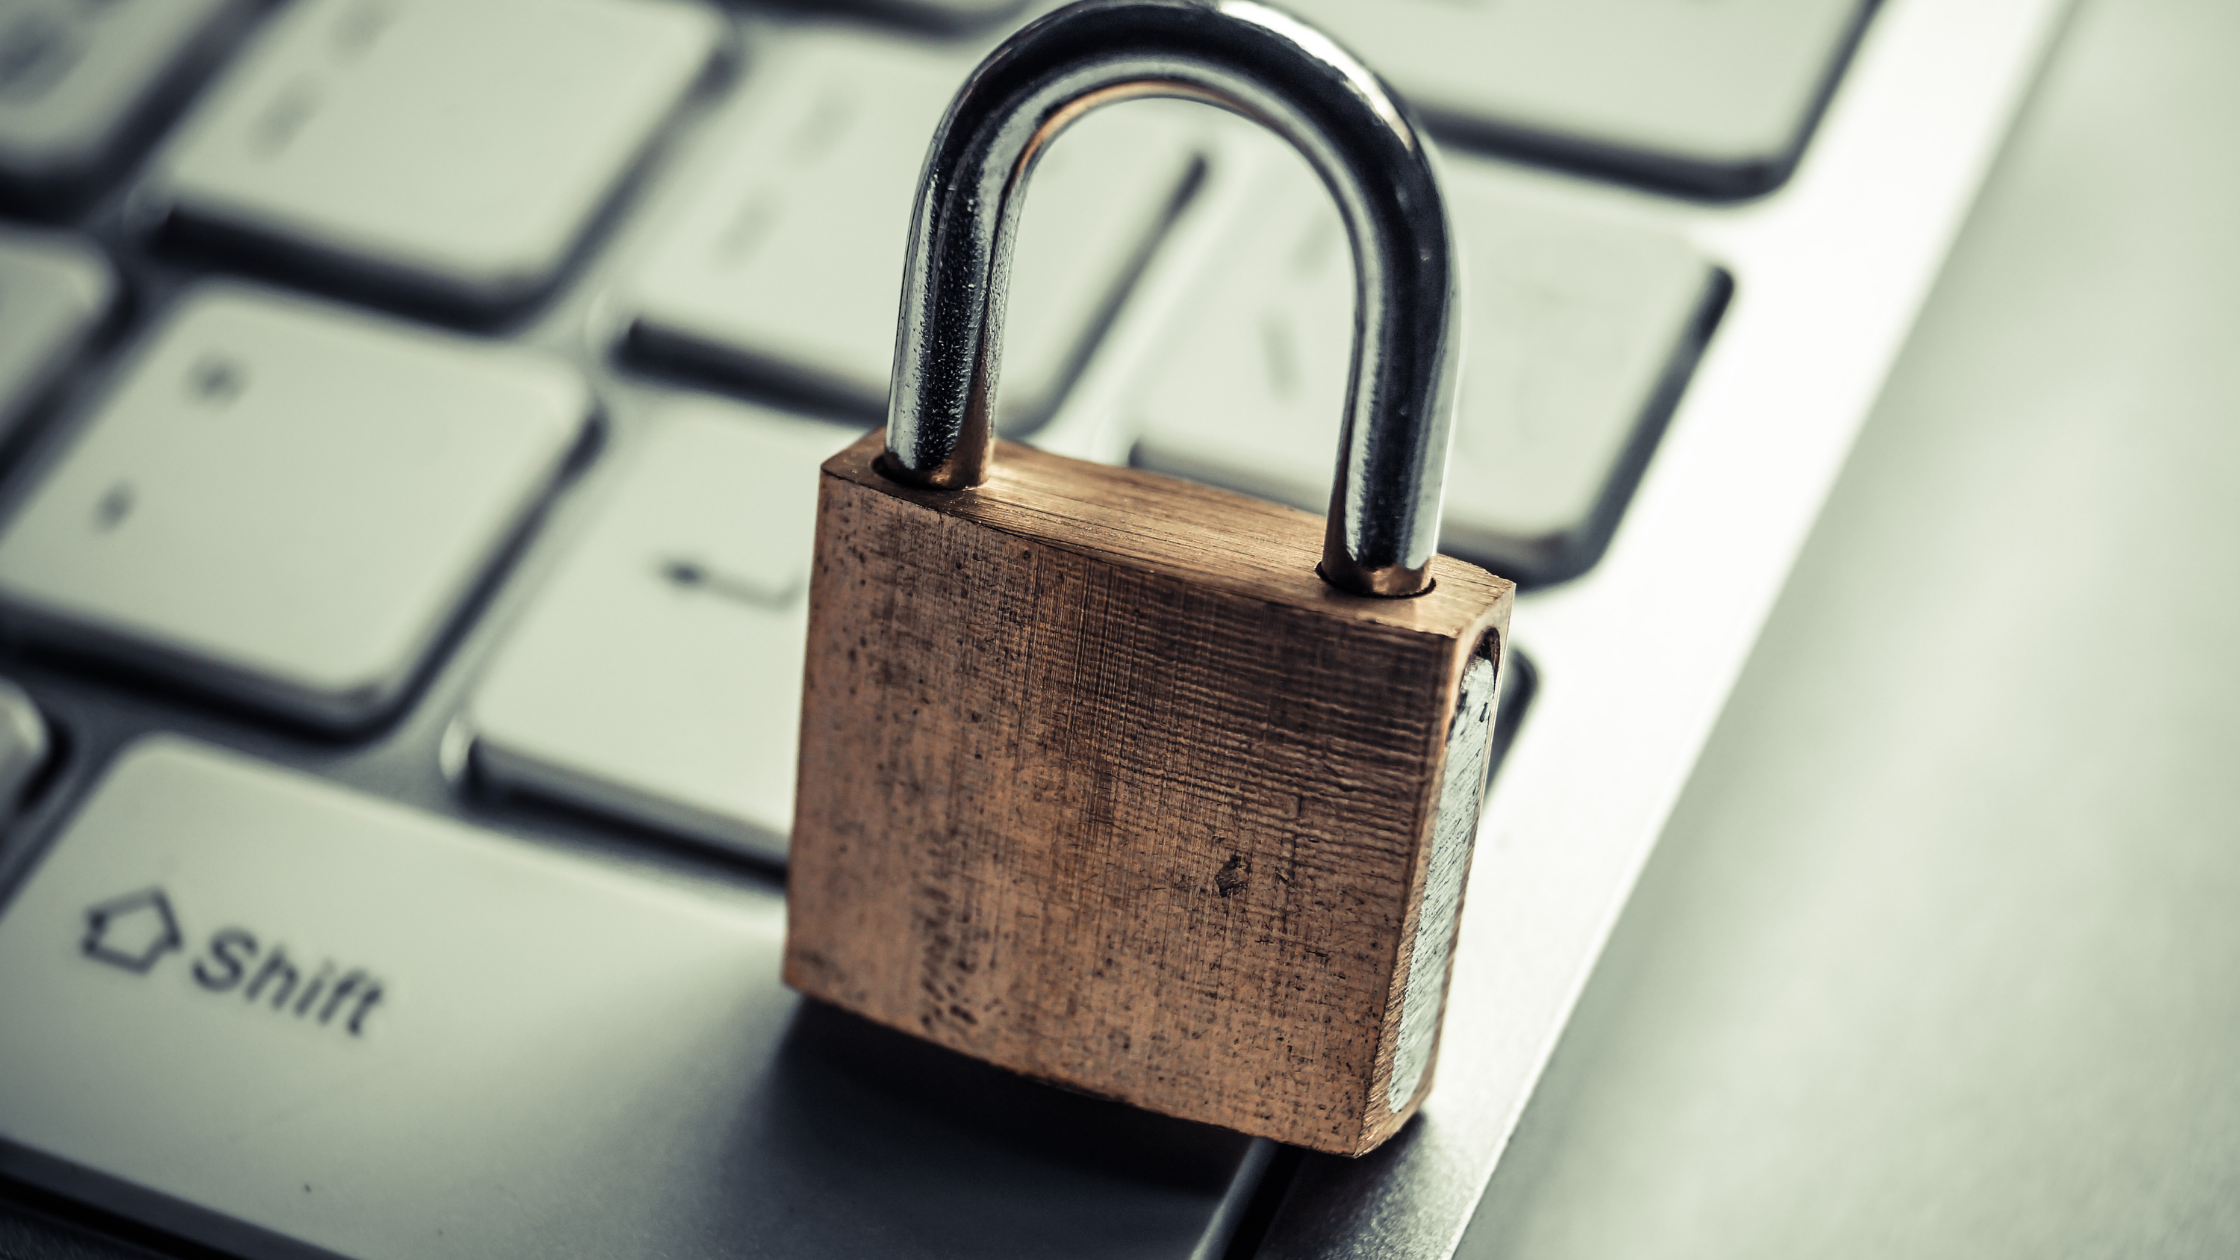 5 Tips to Help Keep Your Files and Data Secure